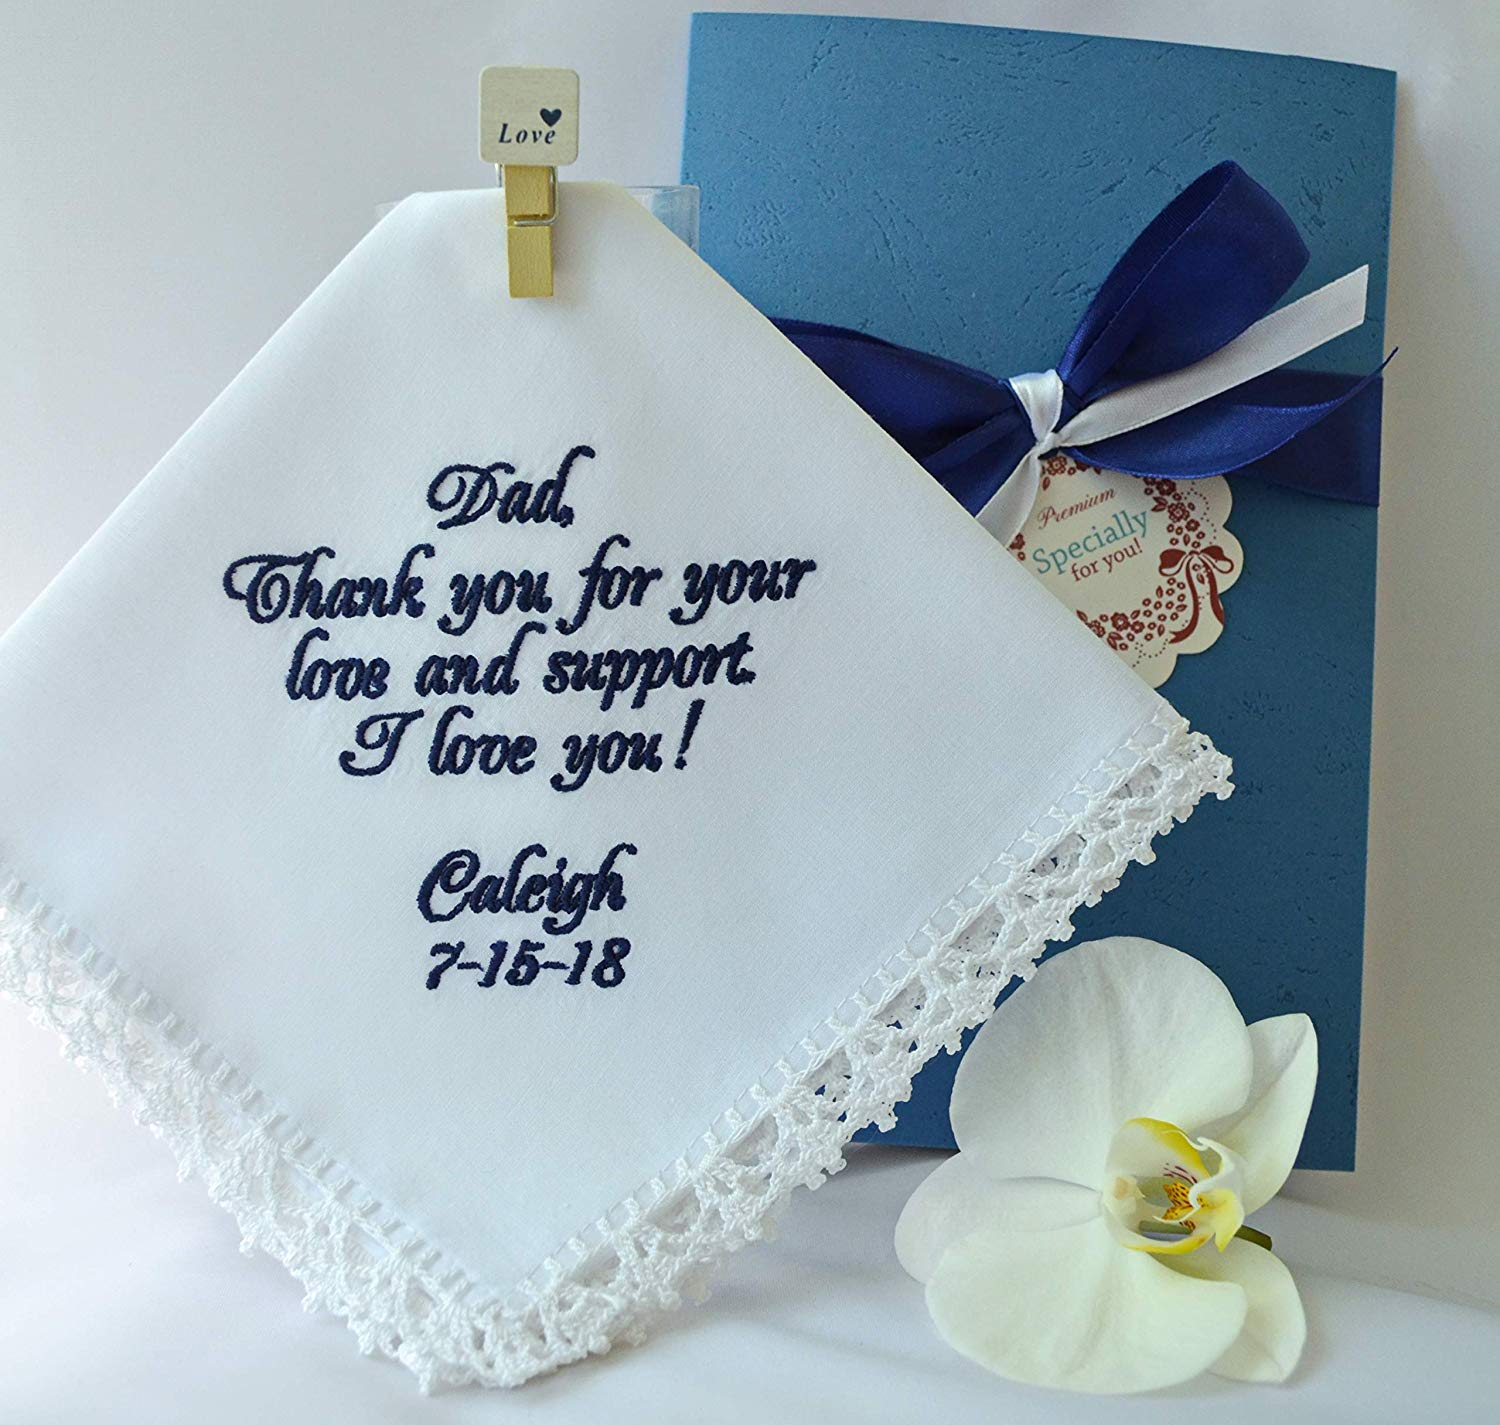 Father of the bride Wedding Handkerchief Gift for Dad from the Bride Embroidered Navy wedding hankerchief hanky hankie Personalized Custom Handmade Wedding keepsake Wedding favors Wedding gift parents